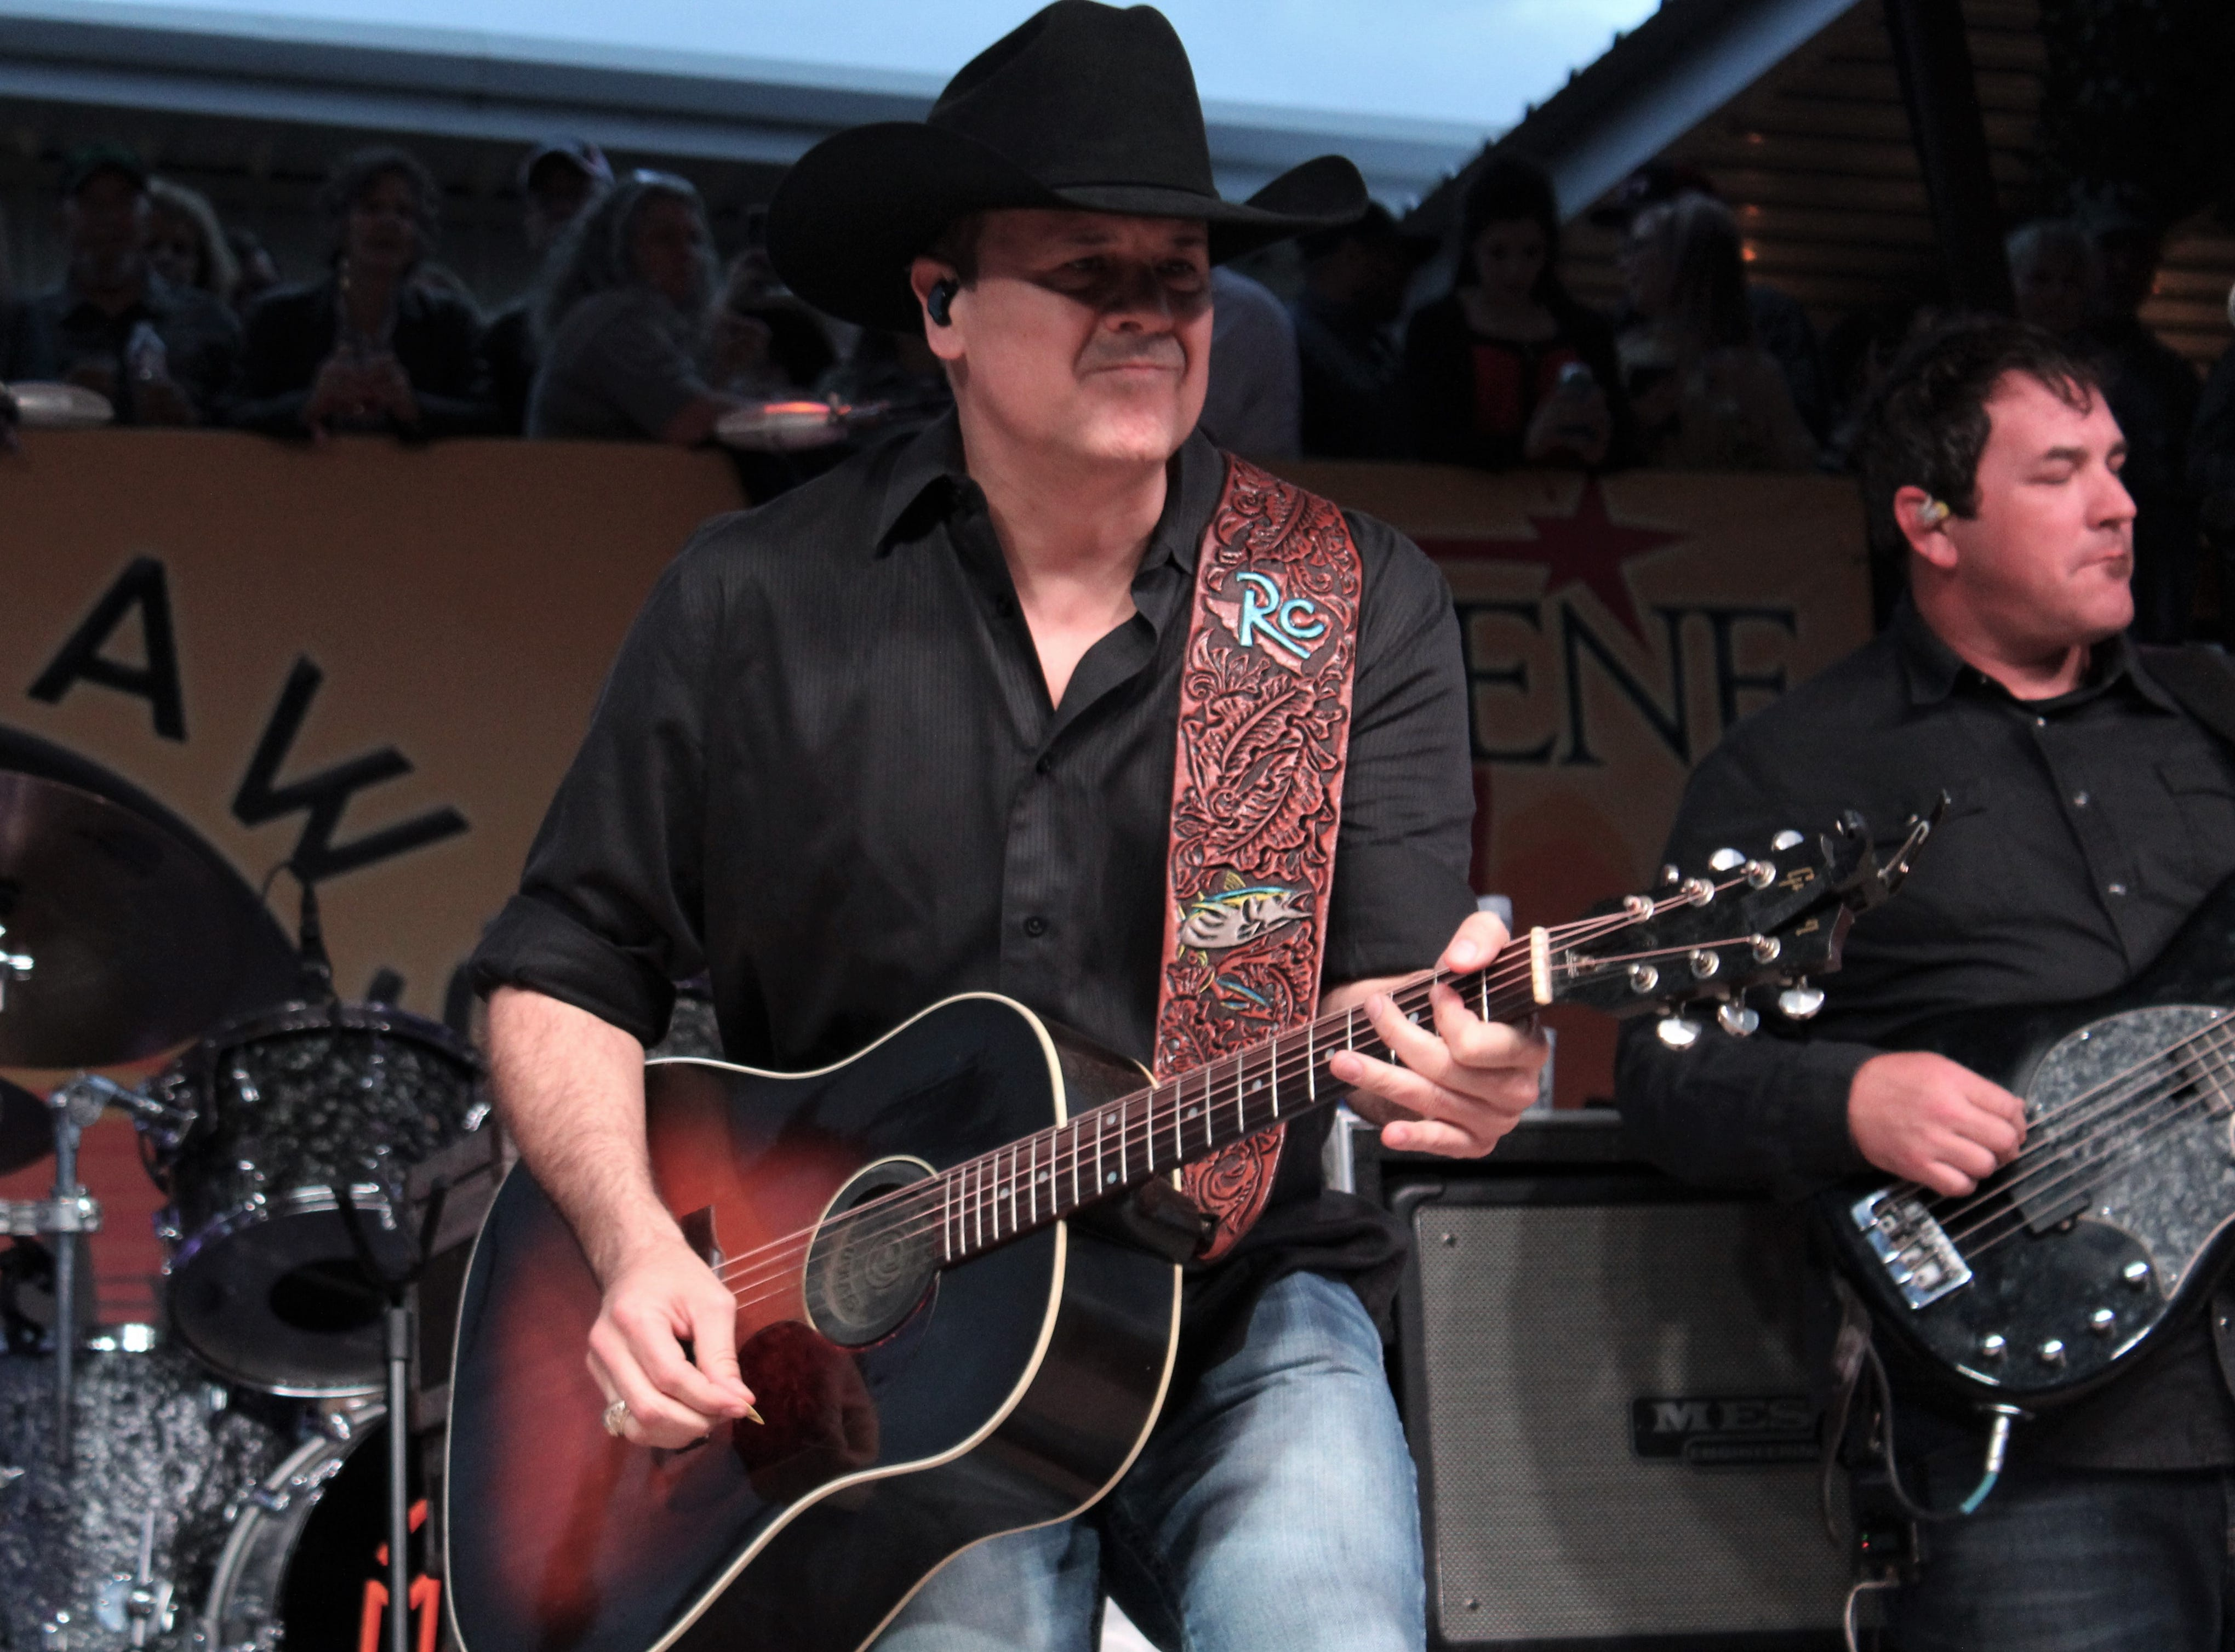 Roger Creager brought the RC style to the Back Porch of Texas on Friday March 22, 2019, at the Outlaws & Legends Music Festival. He noted how popular the event has become from when he played previous to maybe 300 fans.